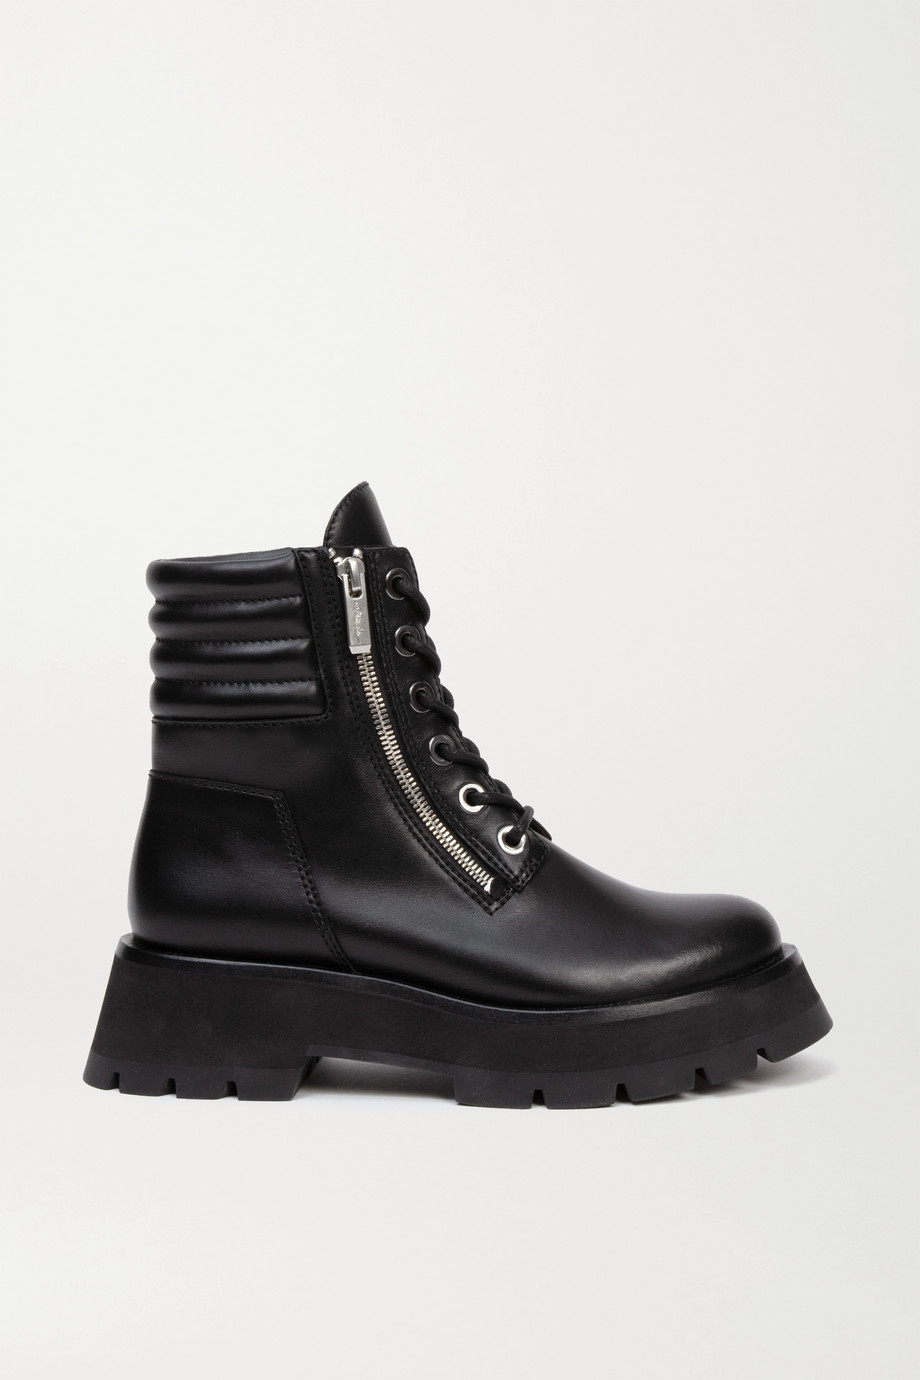 3.1 Phillip Lim Bottines en cuir Kate